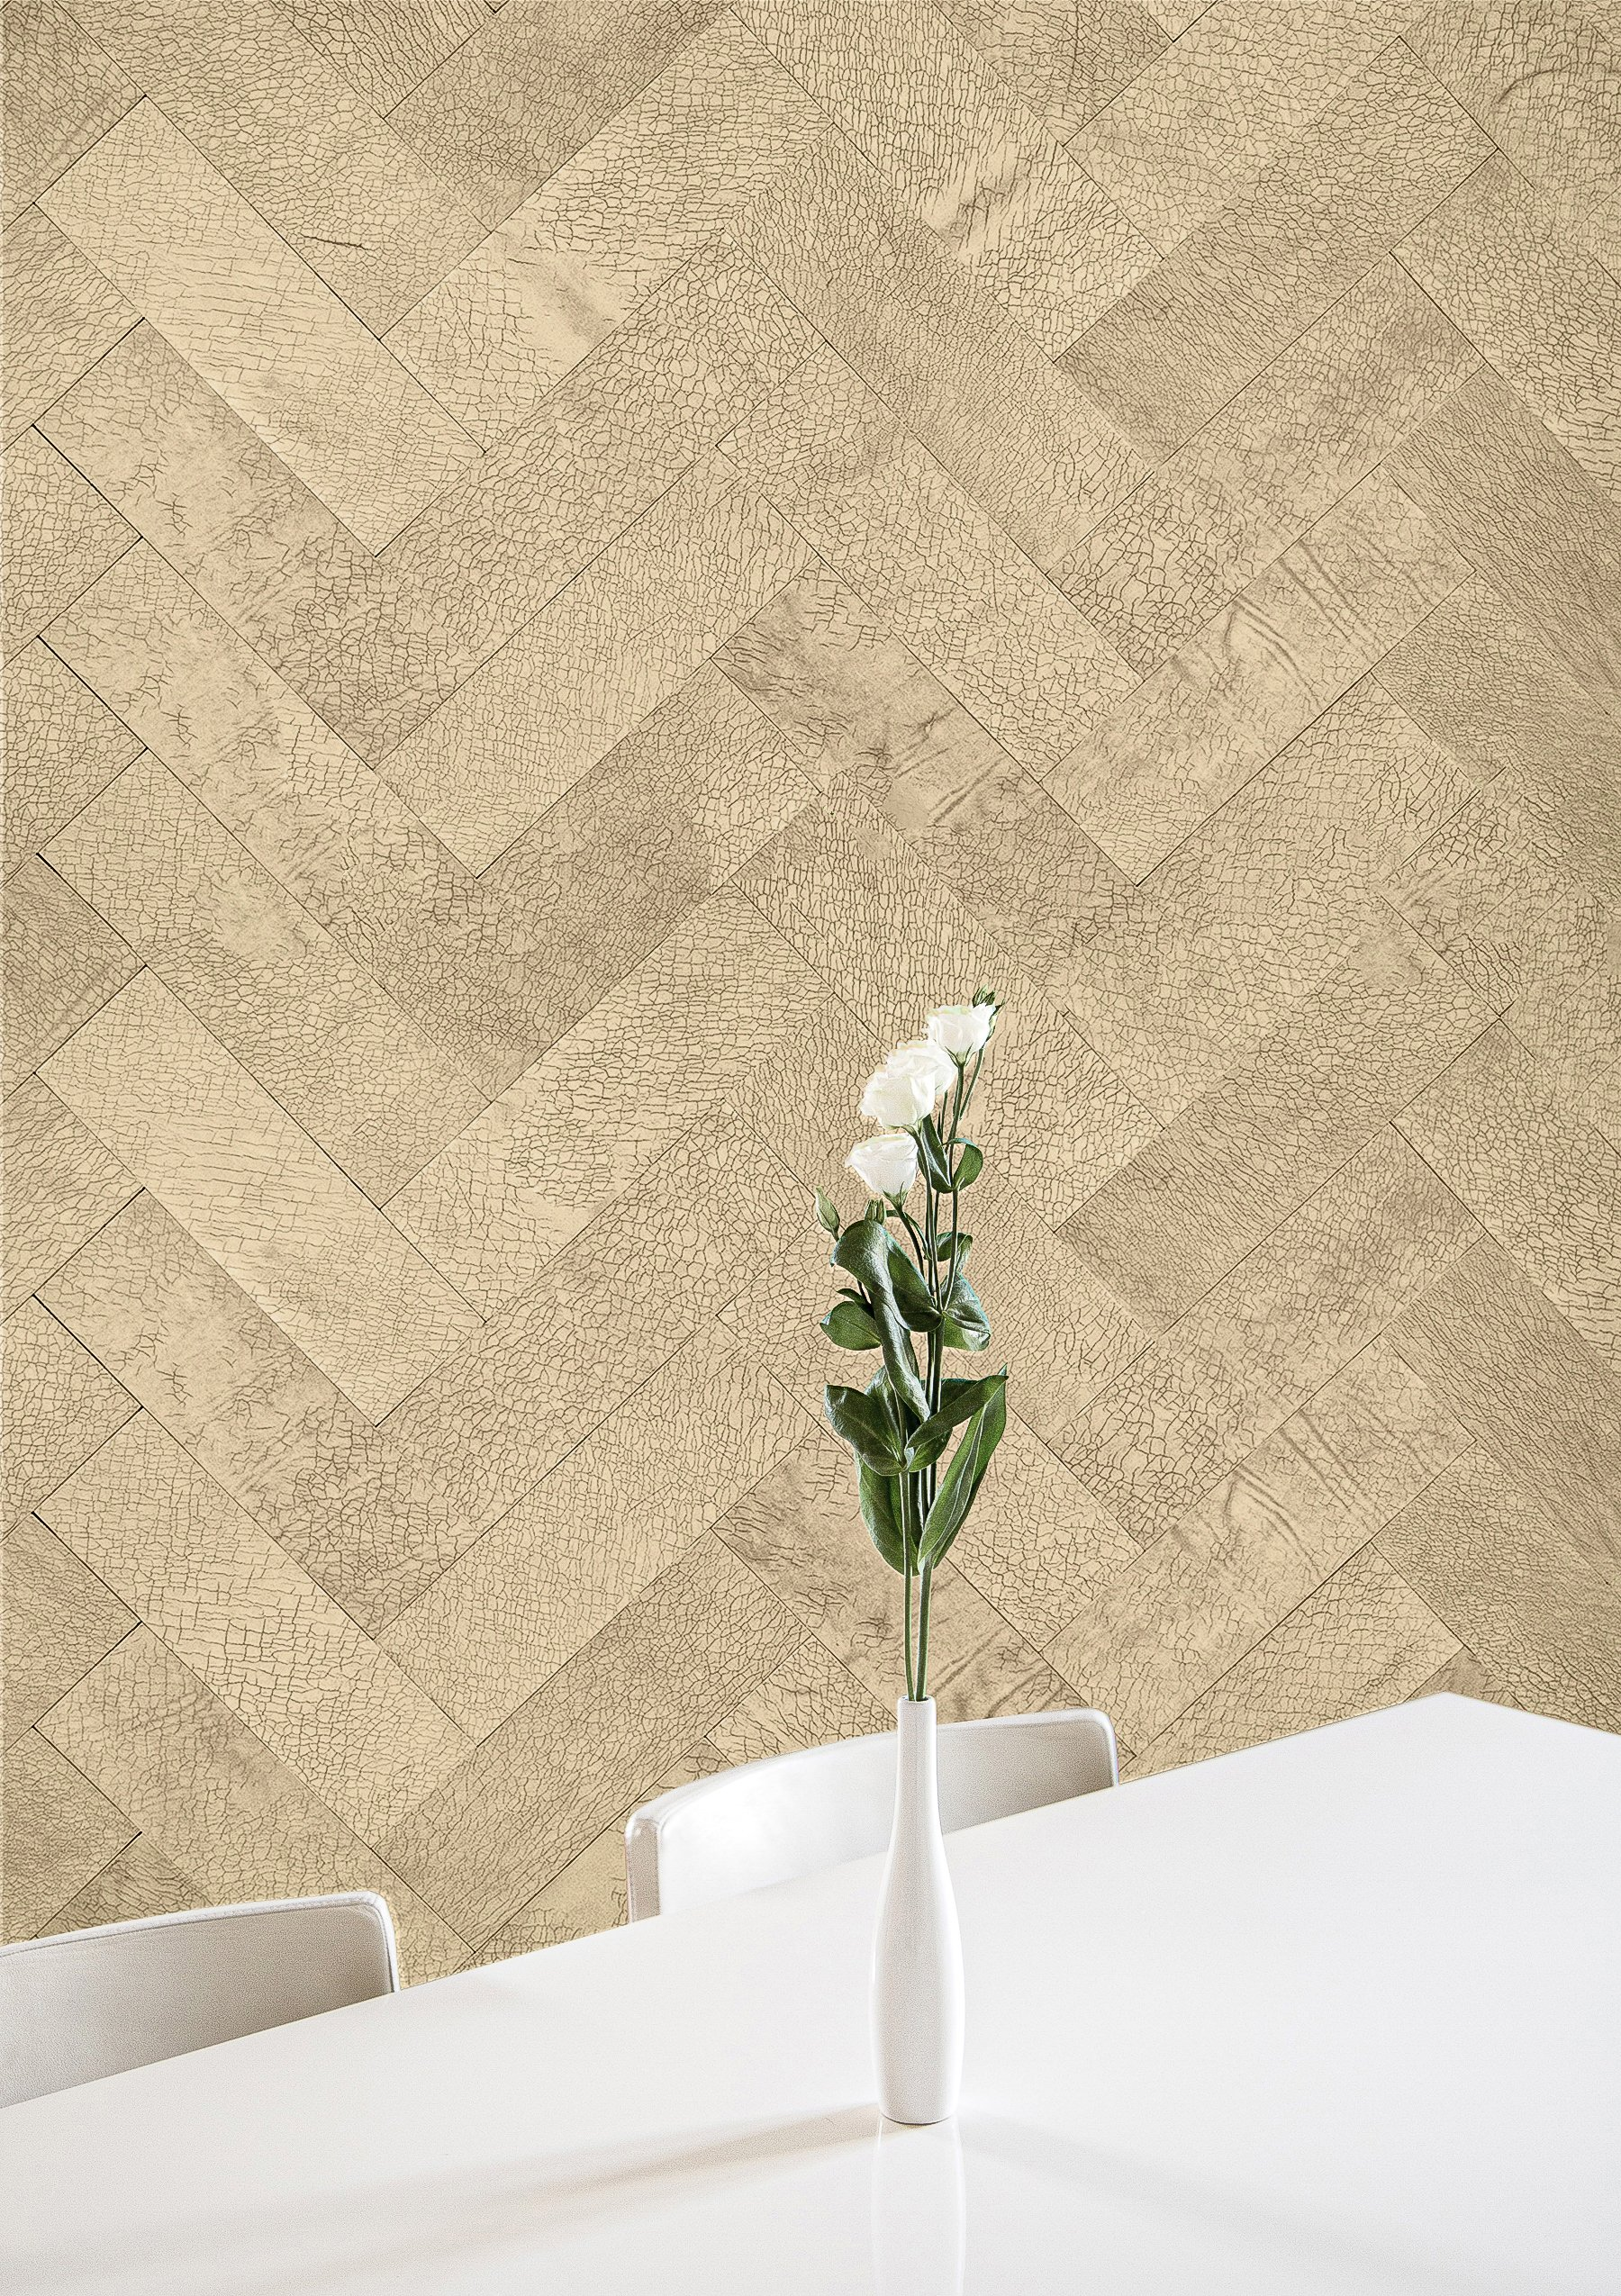 Leather Walls Tiles in Sofisticato Leather Collection by Keleen Leathers, Inc.